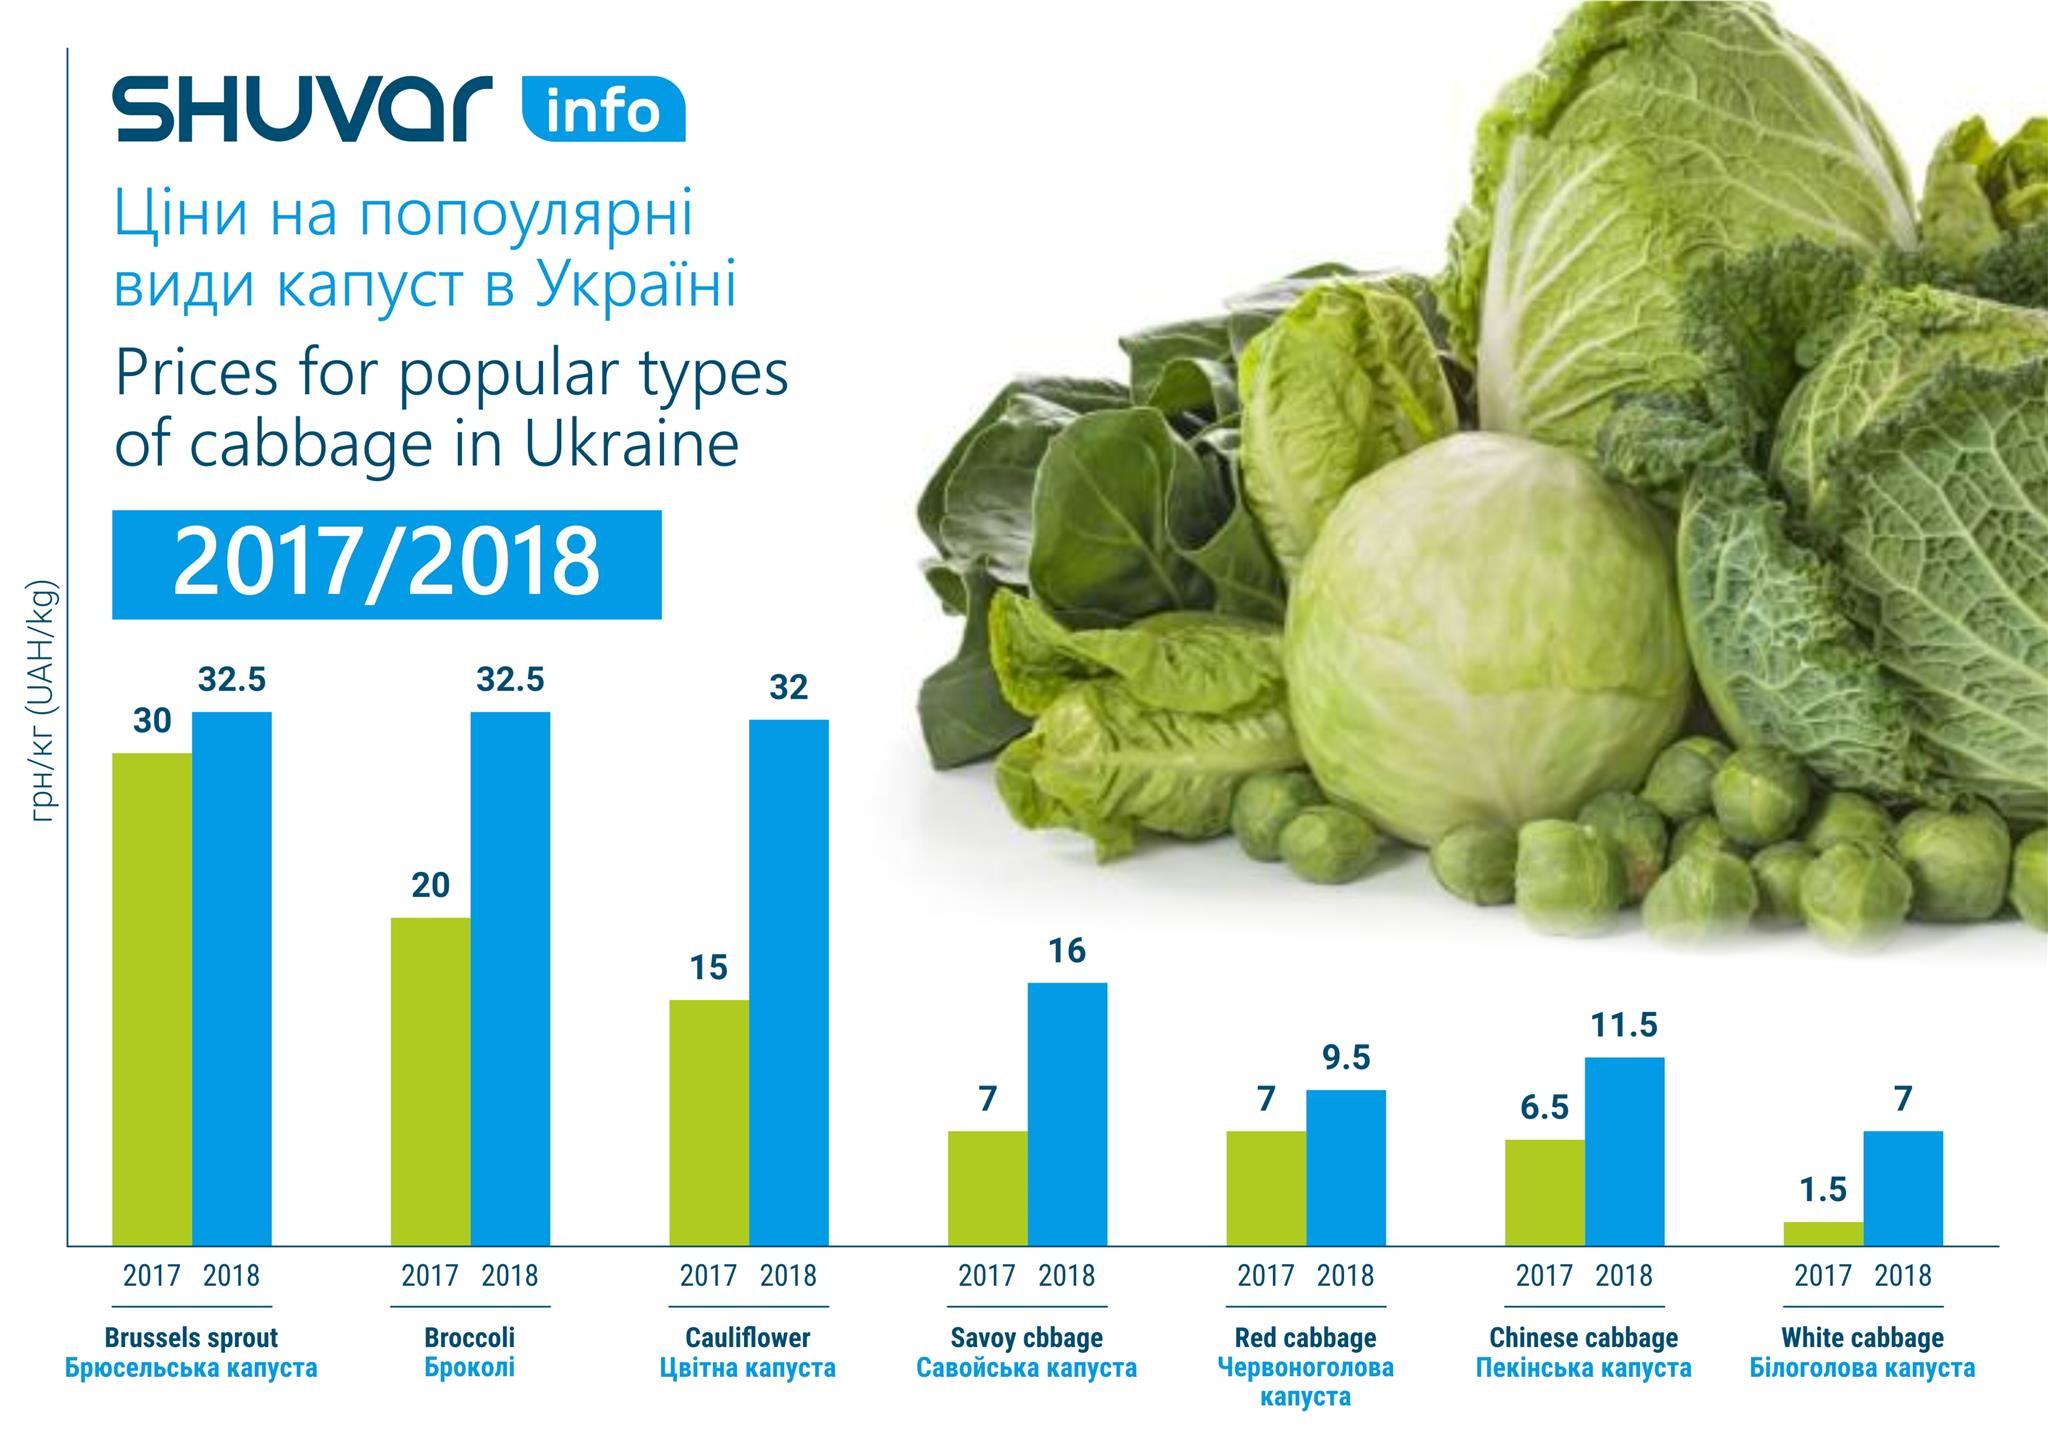 Prices for popular types of cabbage in Ukraine